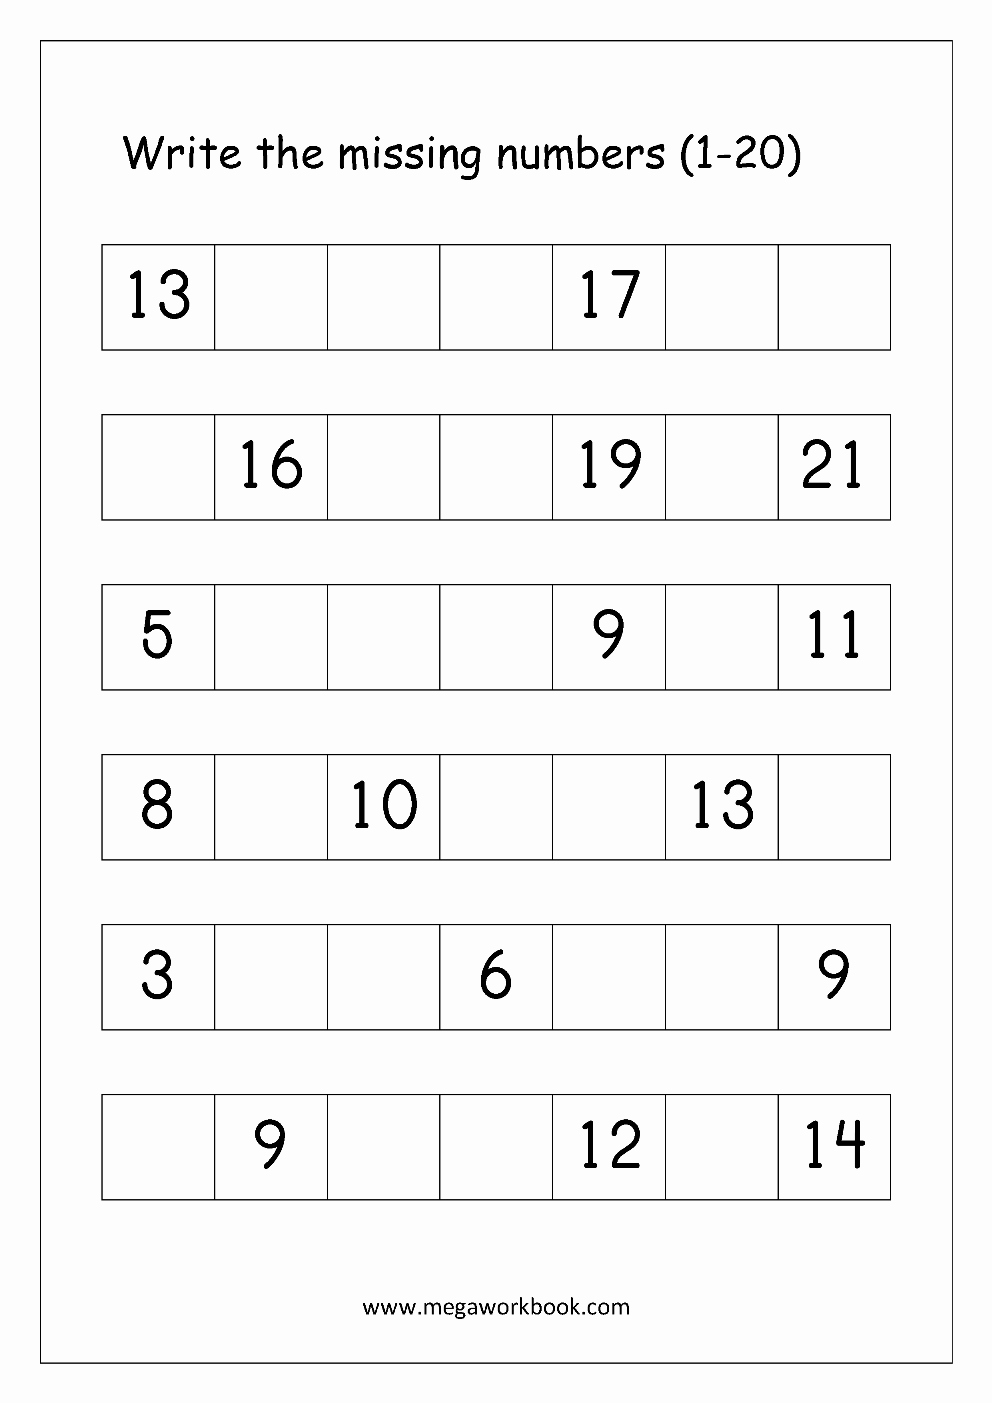 Missing Number Worksheets 1 20 Inspirational Identifying Numbers 1 20 Worksheets